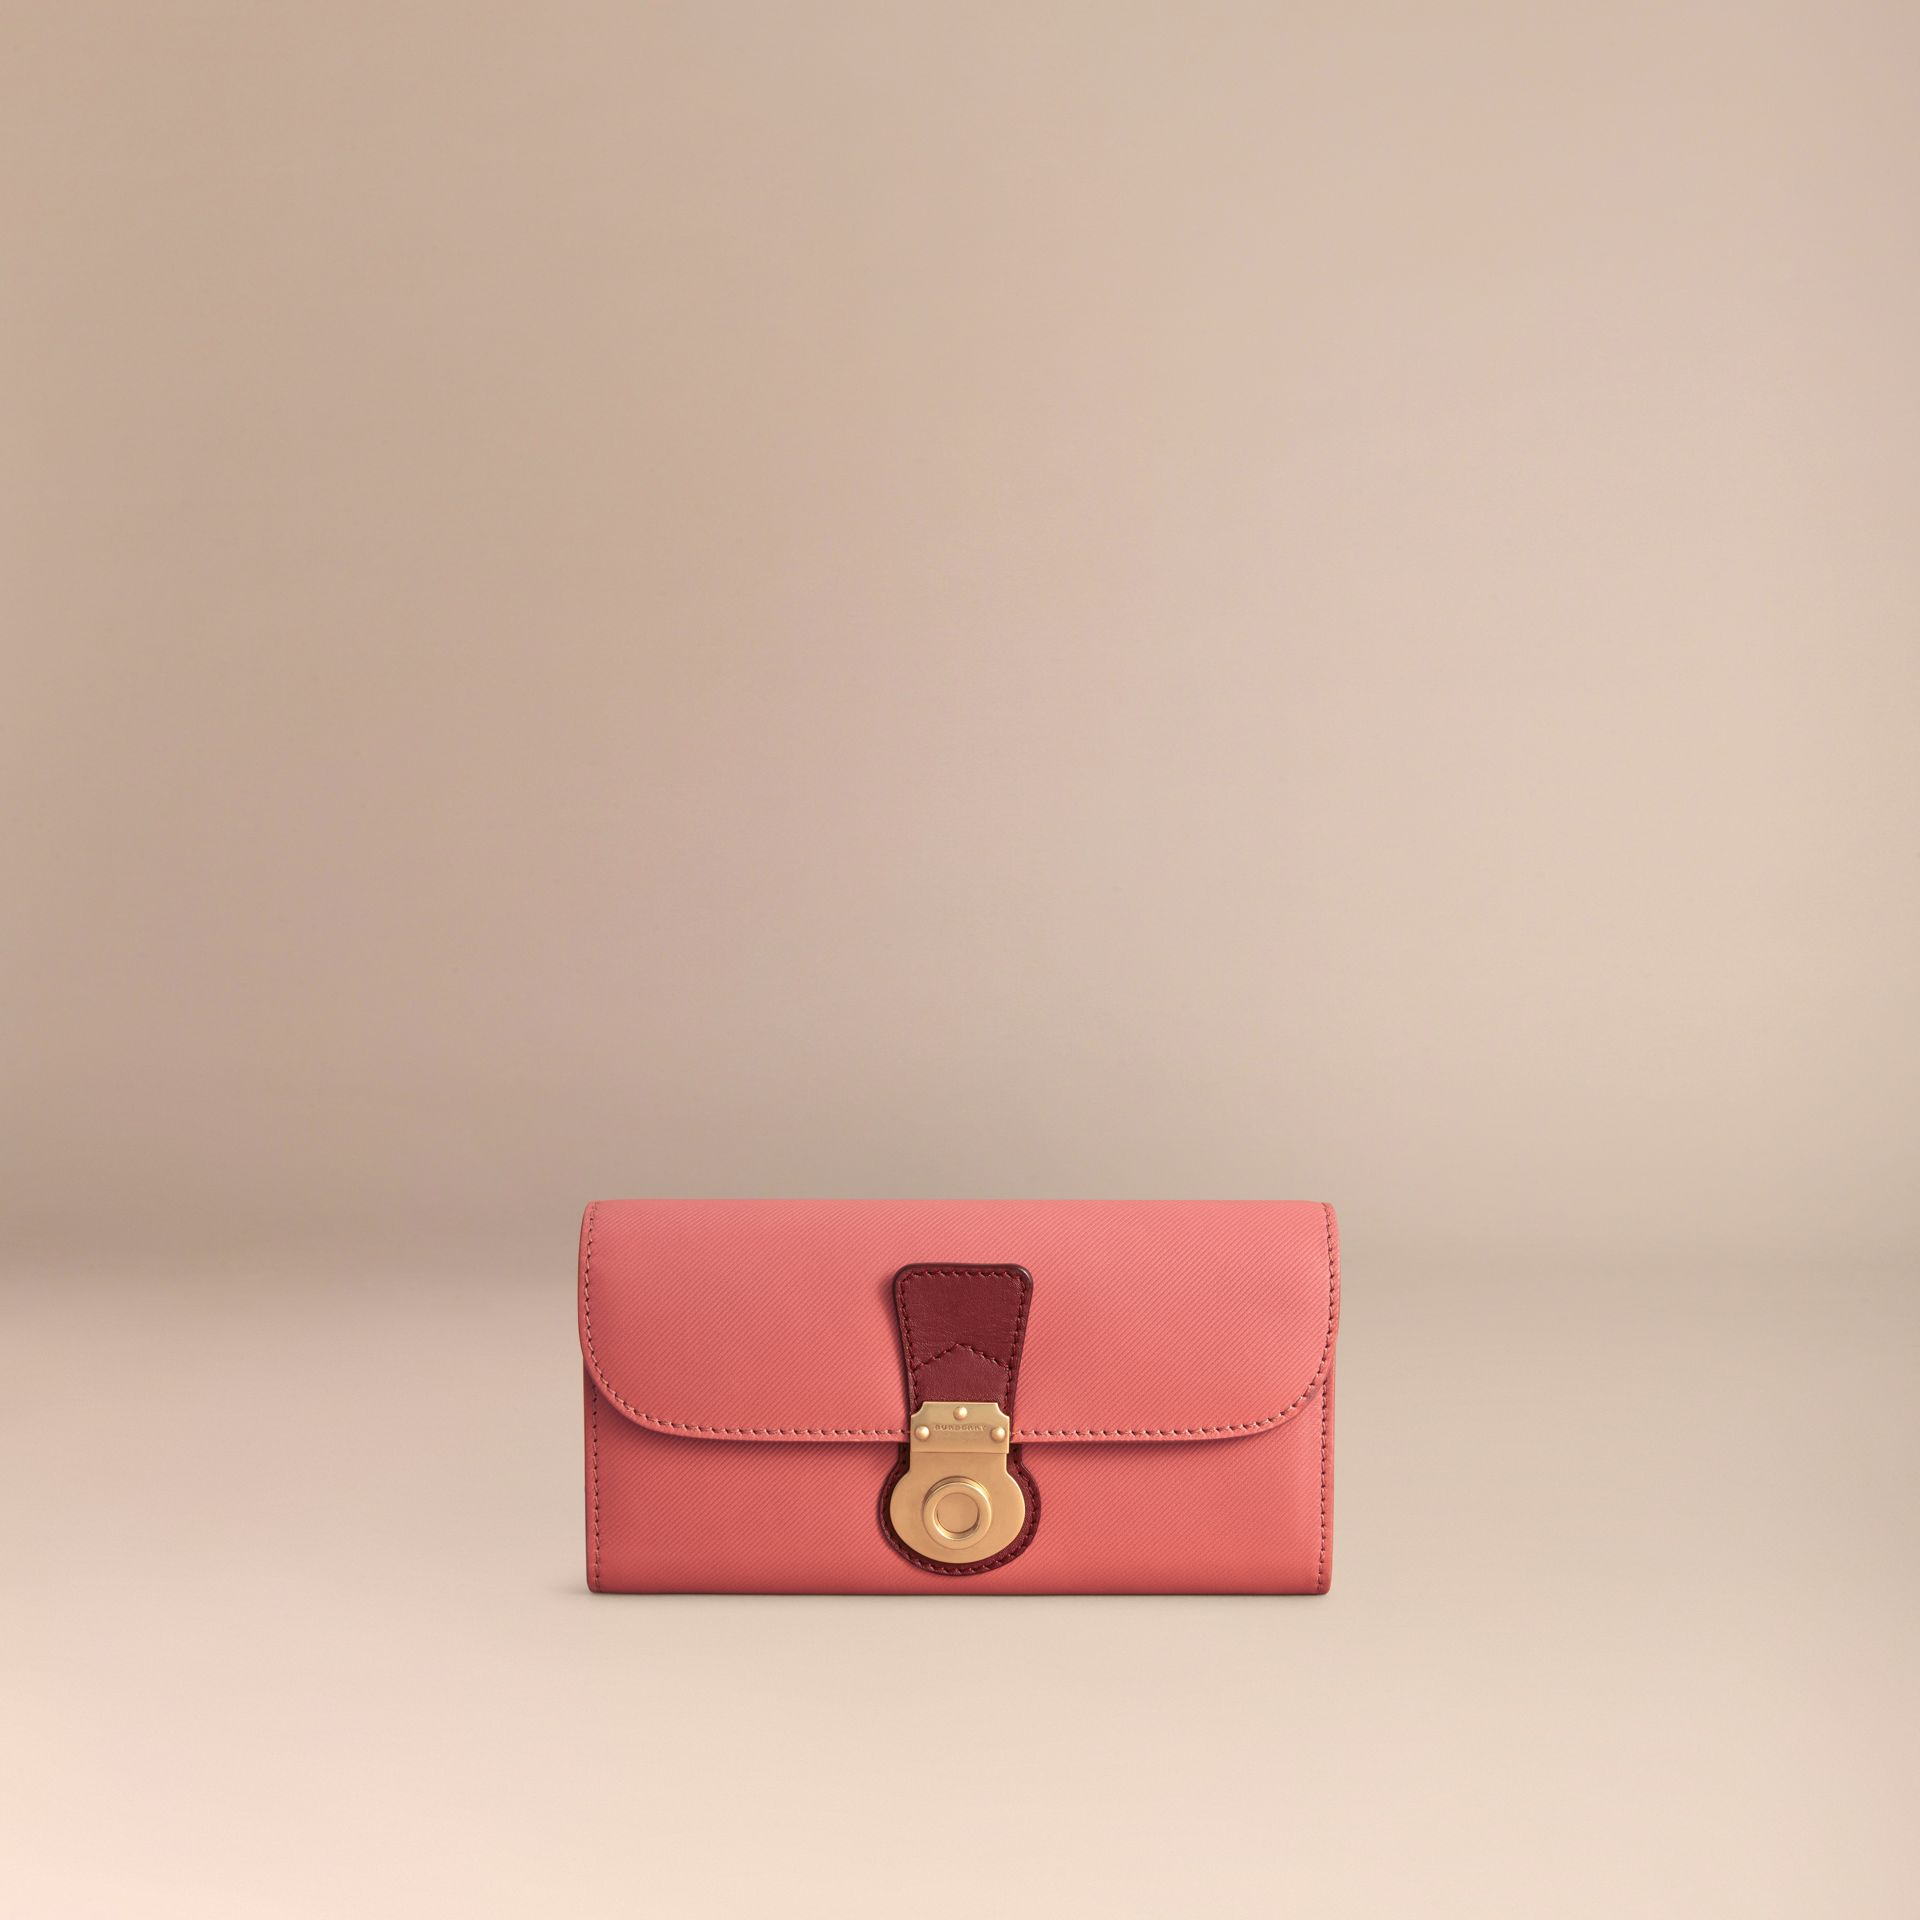 Two-tone Trench Leather Continental Wallet in Blossom Pink/antique Red - Women | Burberry Hong Kong - gallery image 5